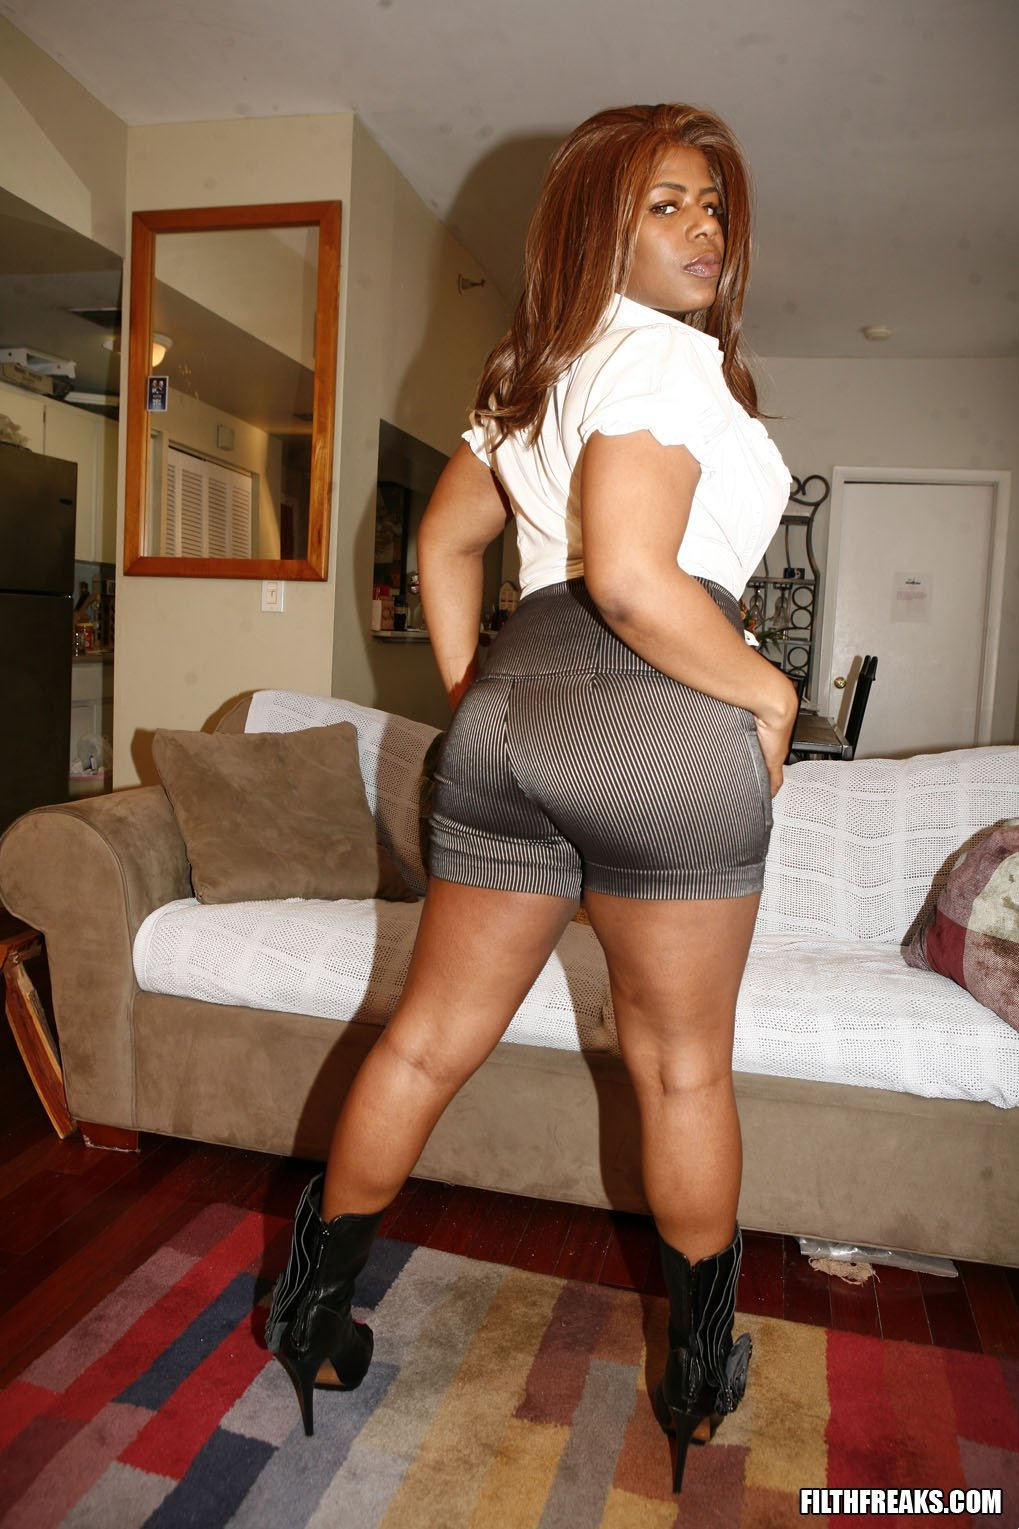 Housewife from